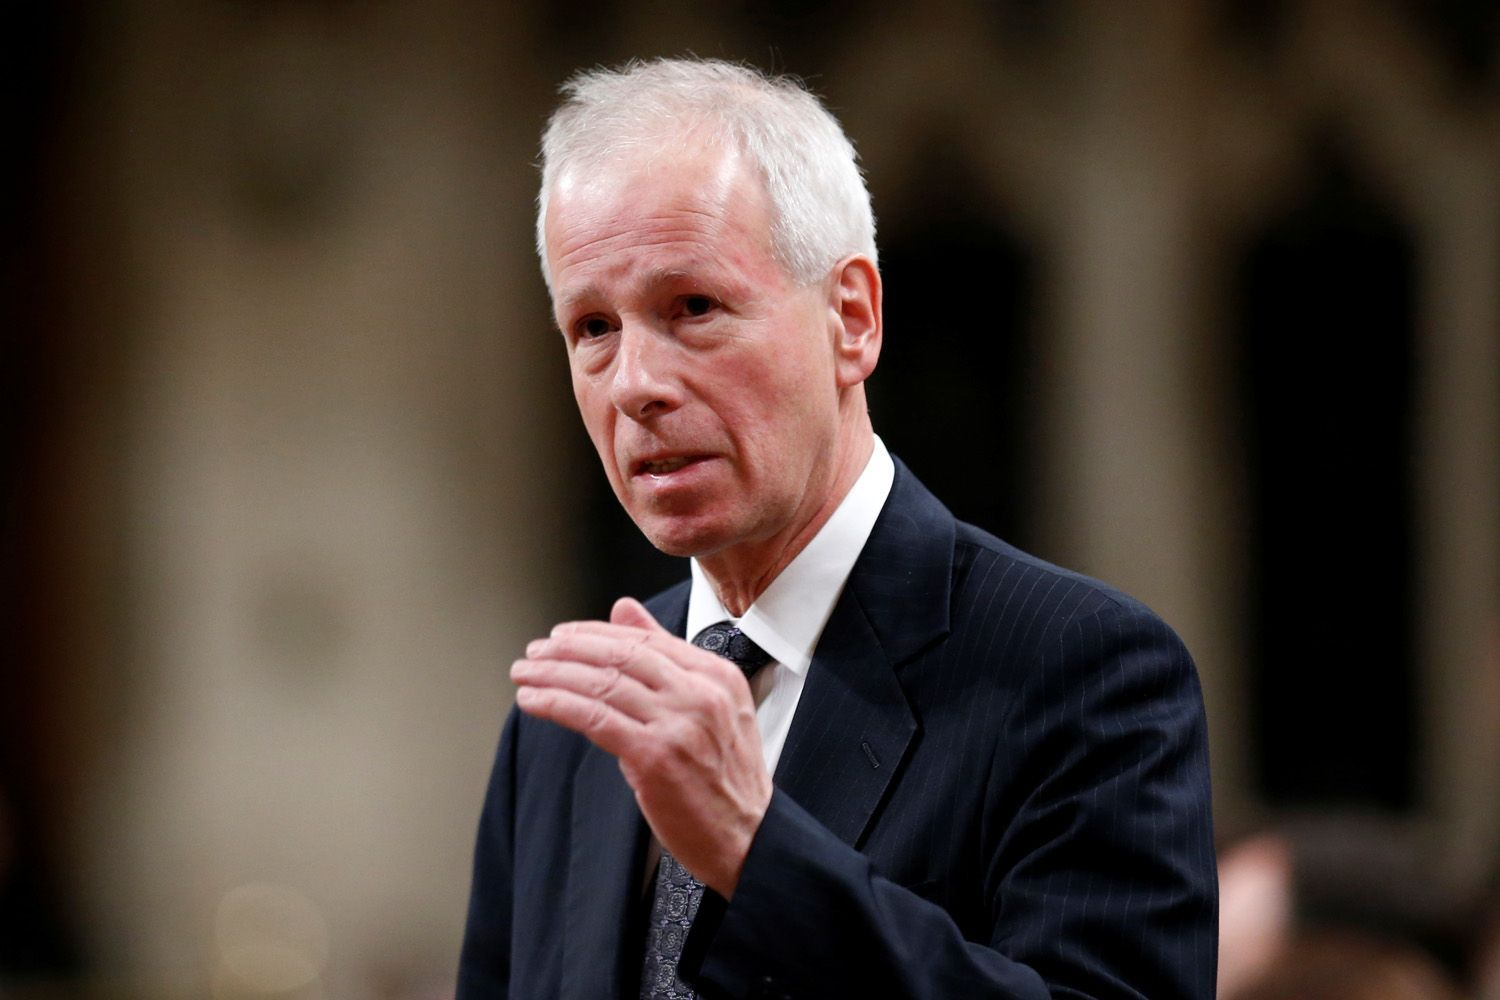 Canada's Foreign Minister Stephane Dion speaks in the House of Commons in Ottawa